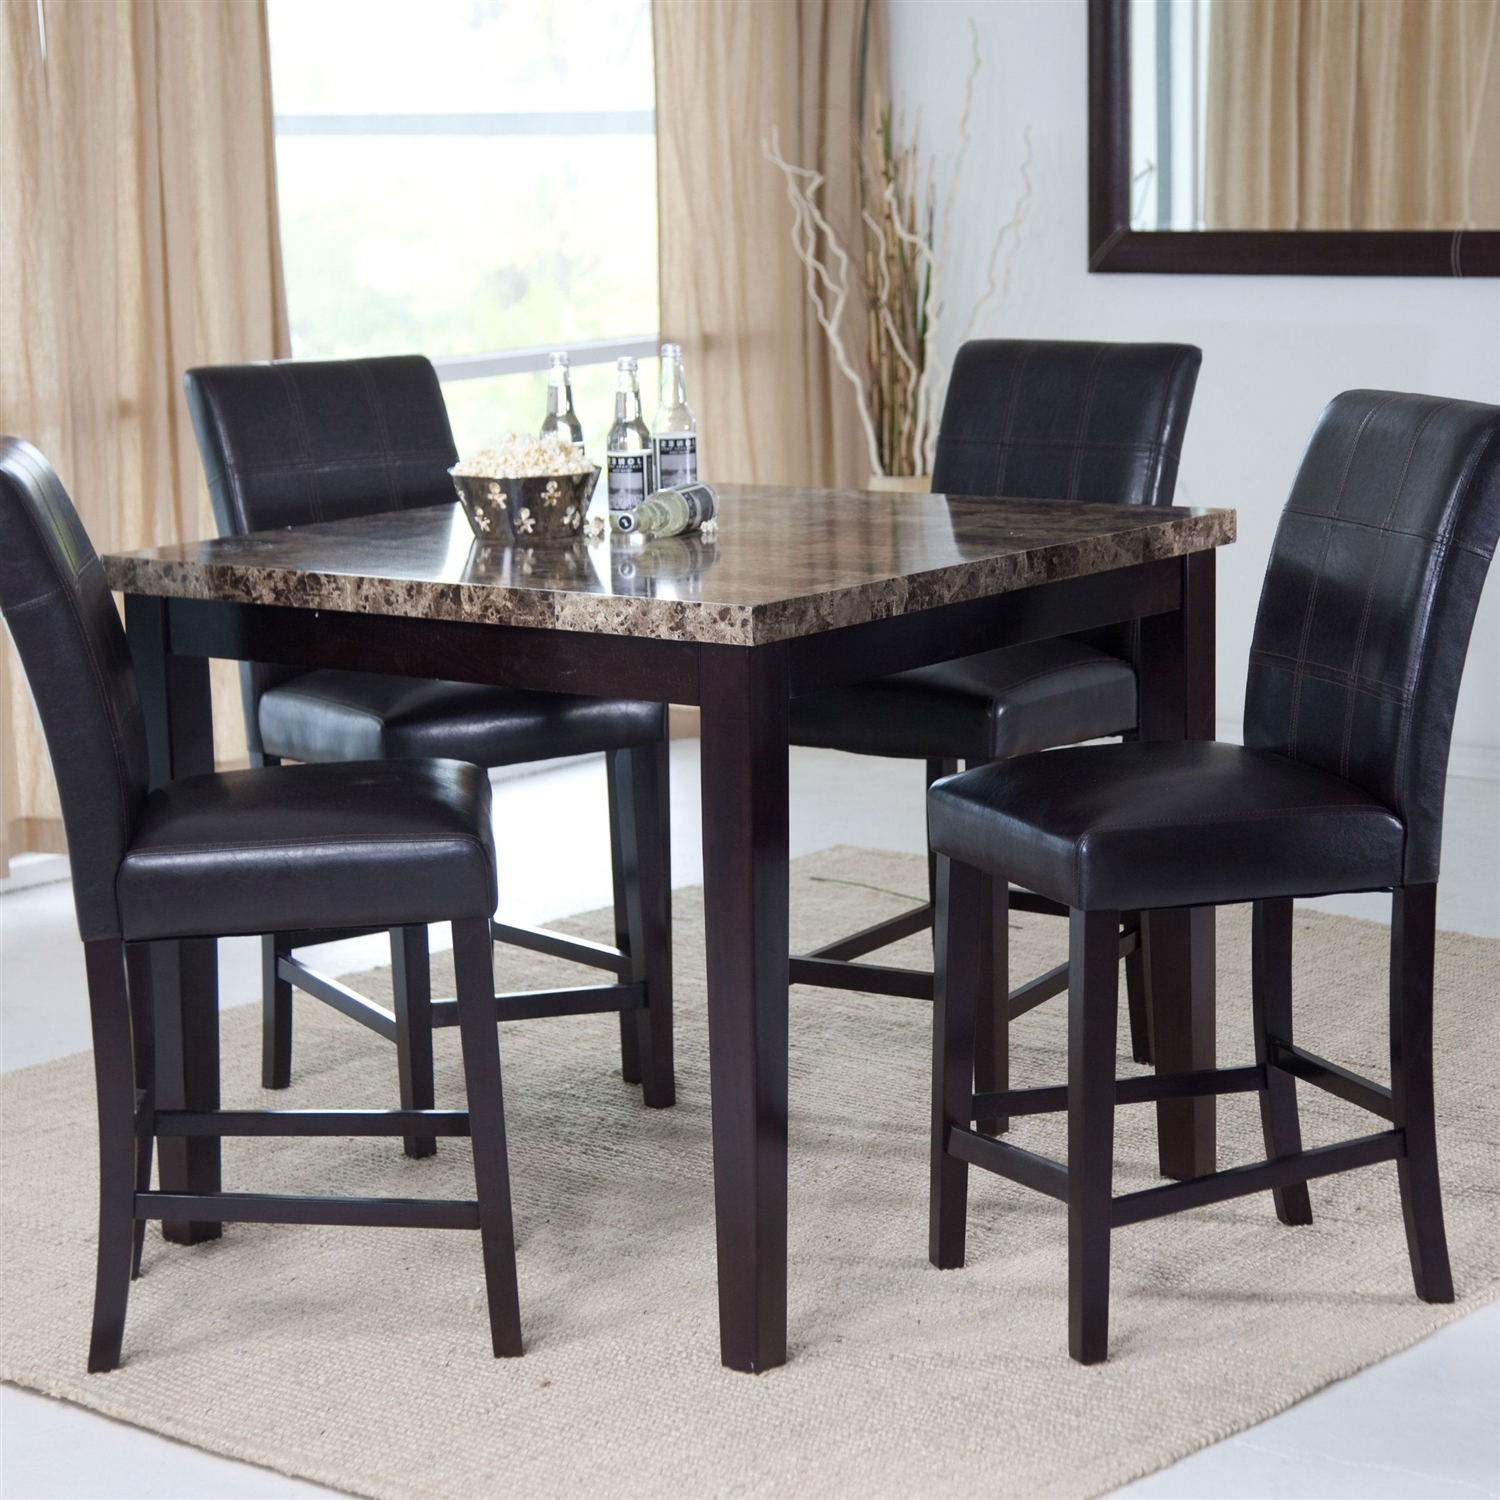 contemporary 42 x 42 inch counter height dining table with faux marble top. Black Bedroom Furniture Sets. Home Design Ideas